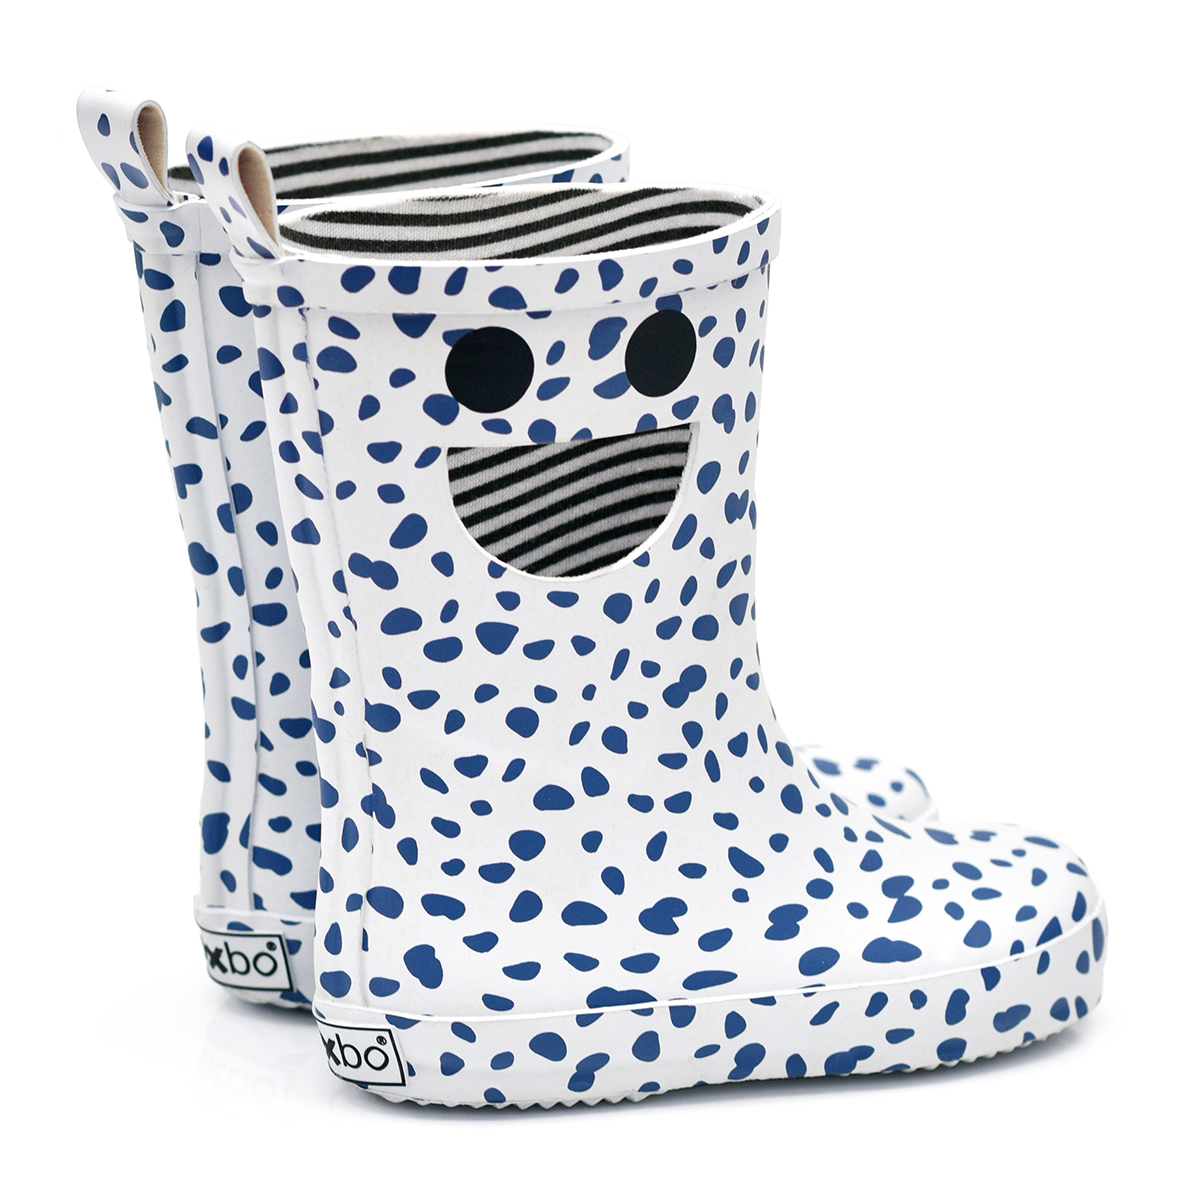 Chaussons & Chaussures Bottes Wistiti Snowflok - 20 Bottes Wistiti Snowflok - 20